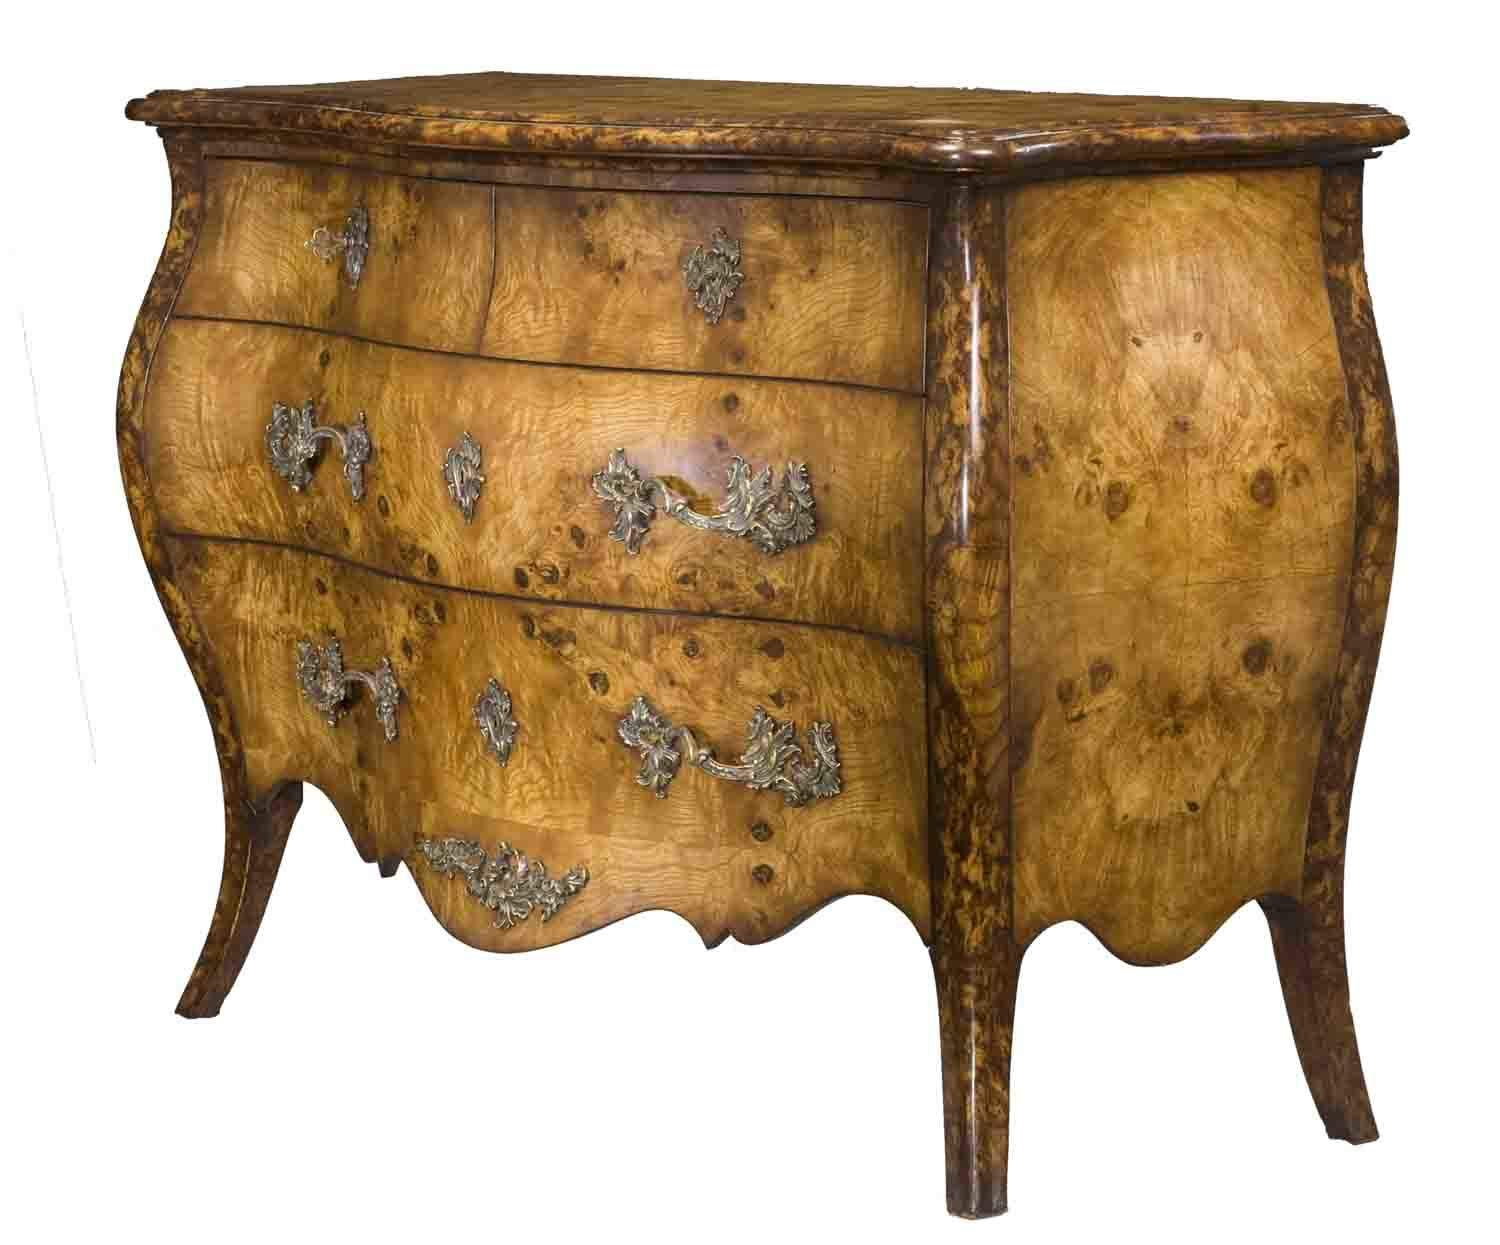 Meuble Style Louis Xv Commode Louis Xv Ronce De Noyer